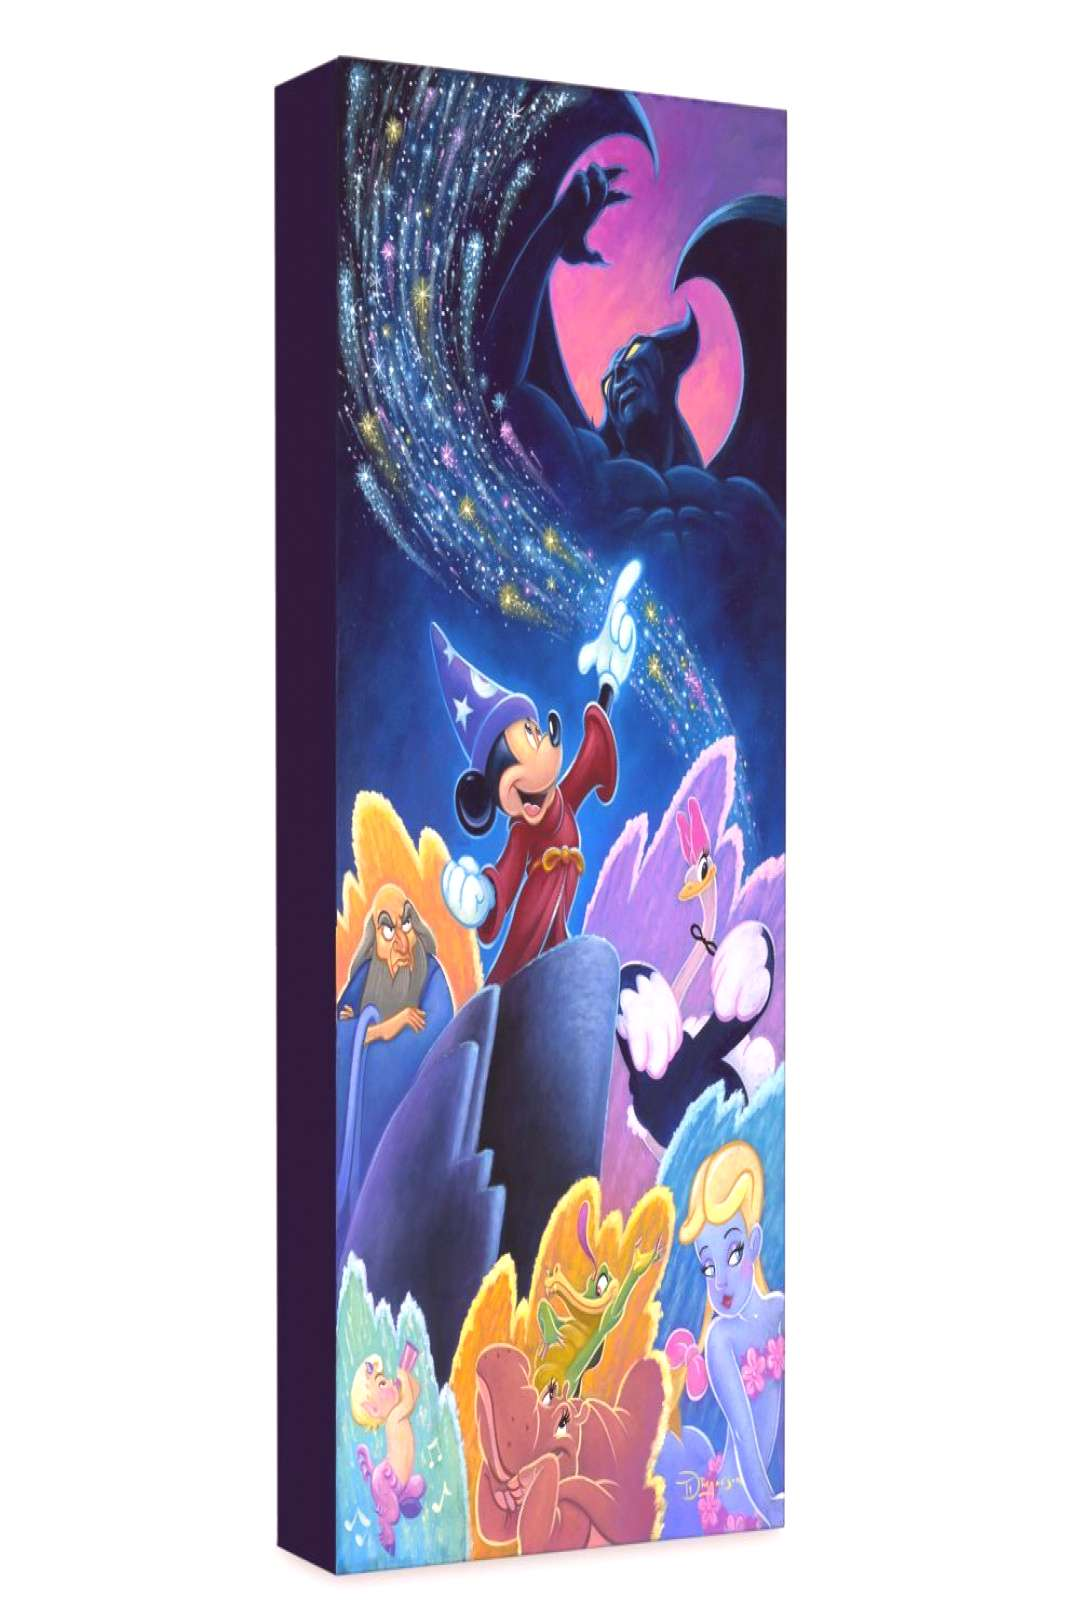 Sorcerer Mickey Mouse Splashes of Fantasia Giclée on Canvas by Tim Rogerson shopDisney